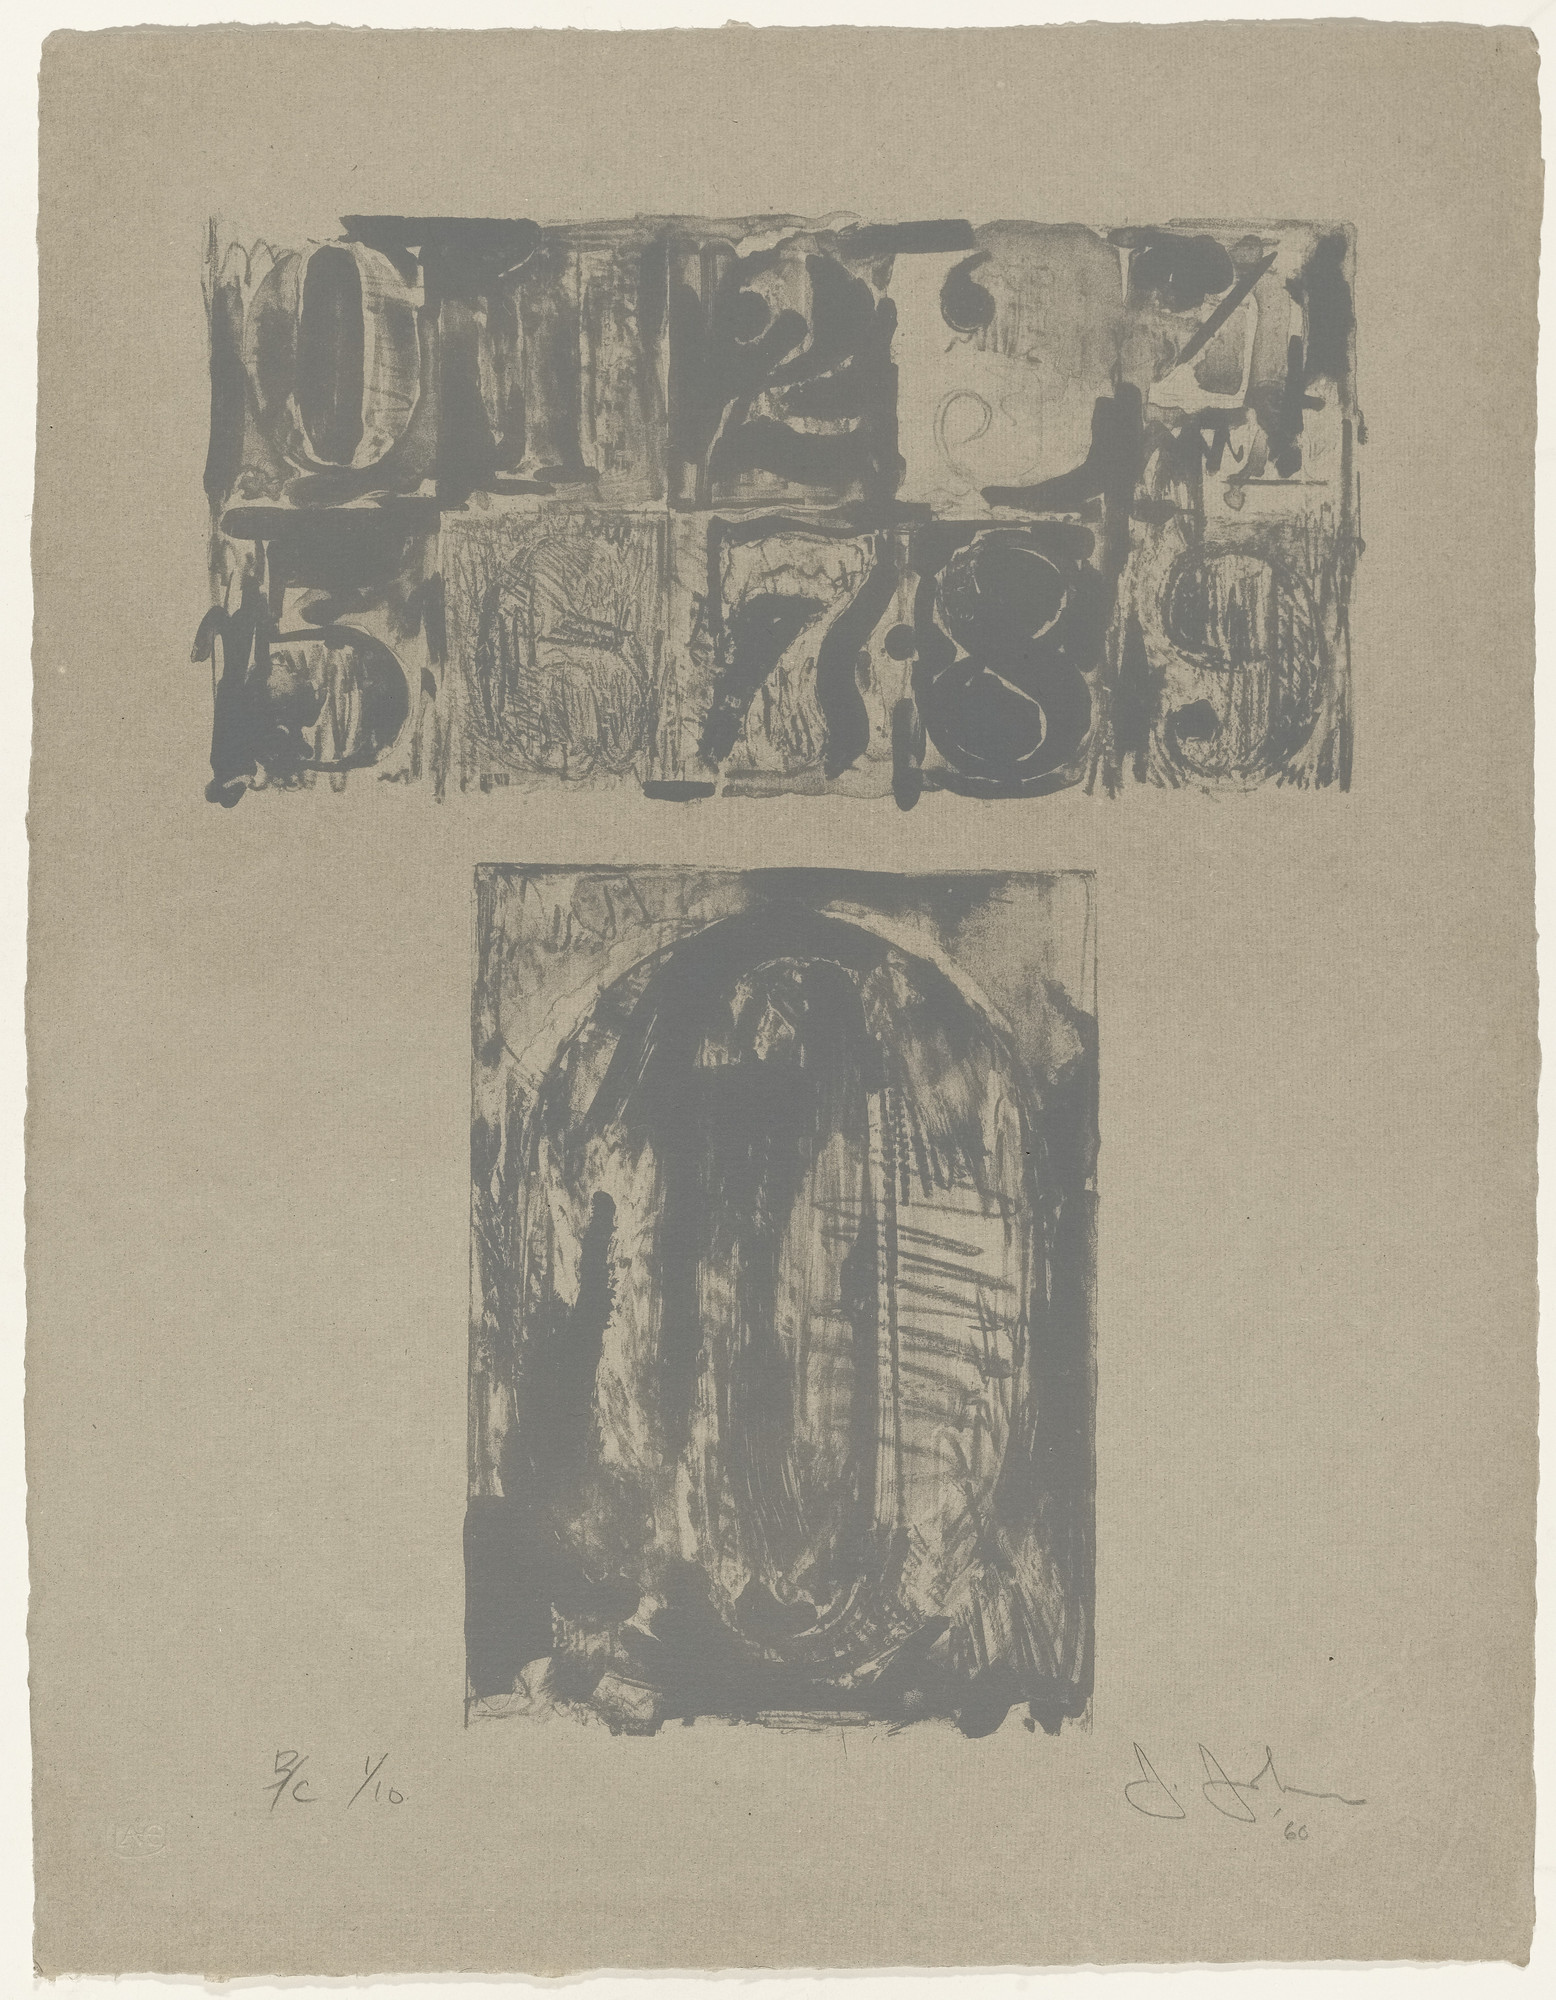 Jasper Johns. 0 from 0-9. 1960, published 1963